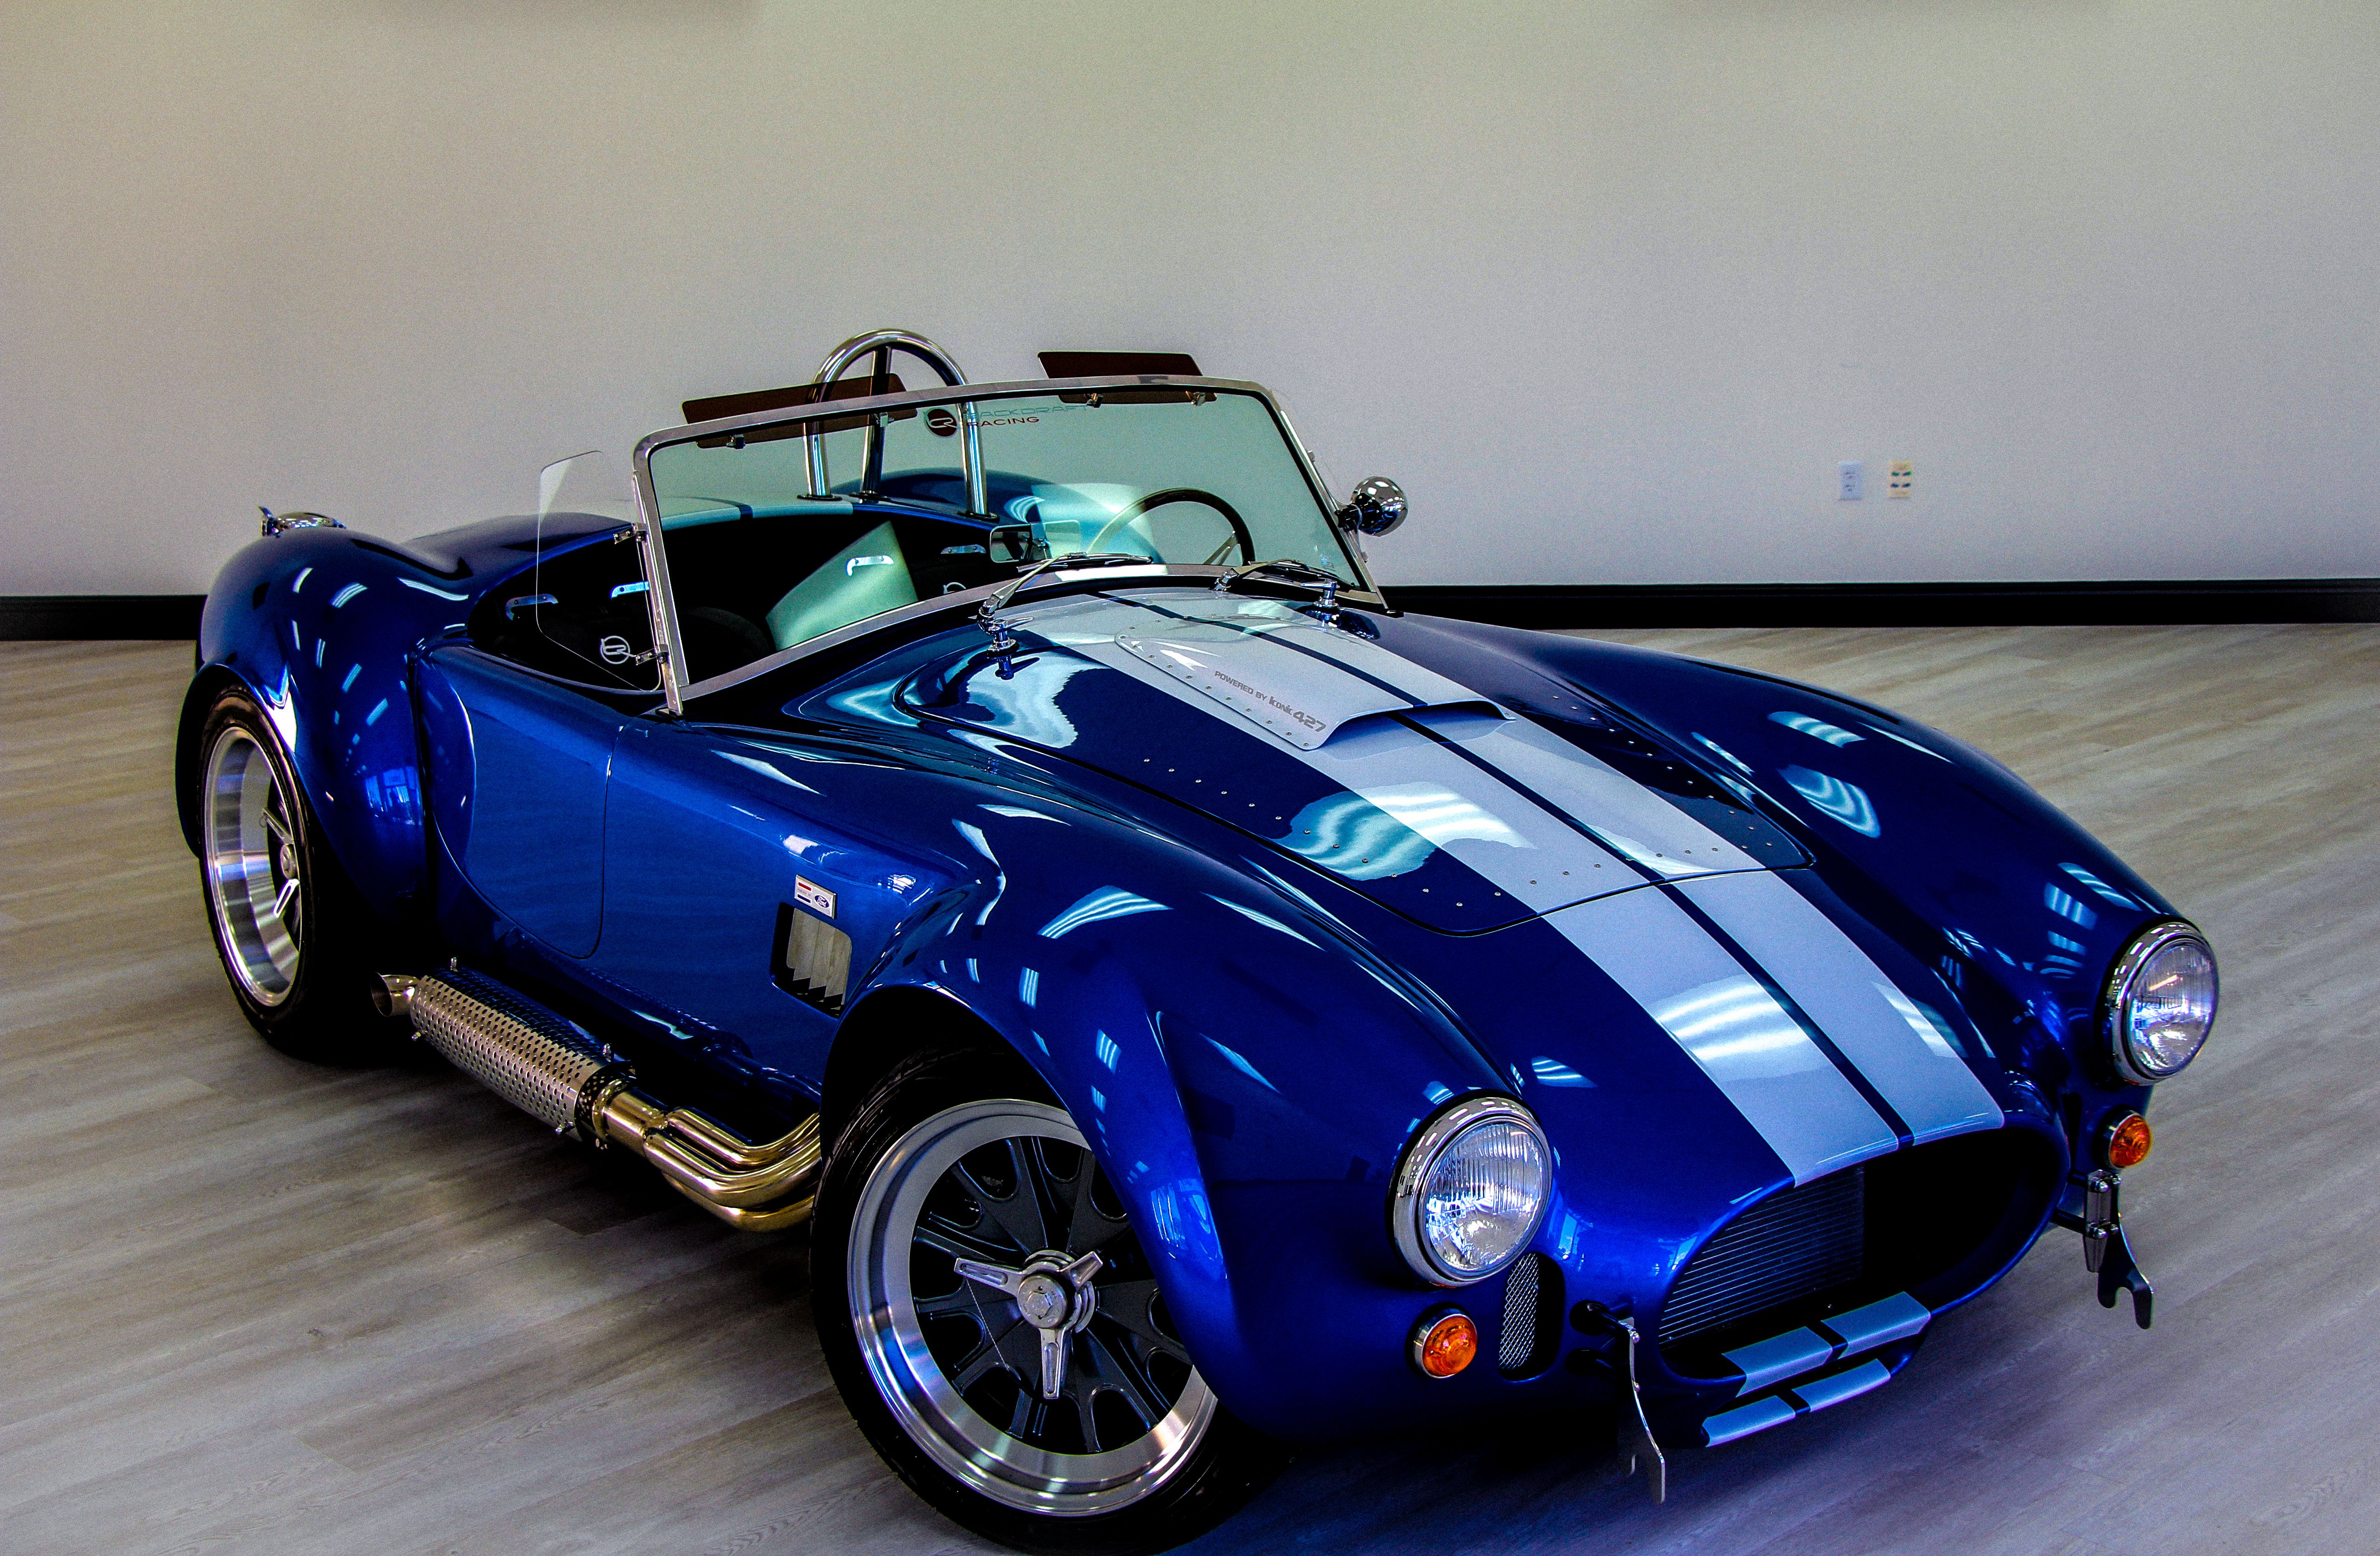 Used Cars Miami >> Auto Cafe Of Florida Is A Used Car Dealer In Miami With Top